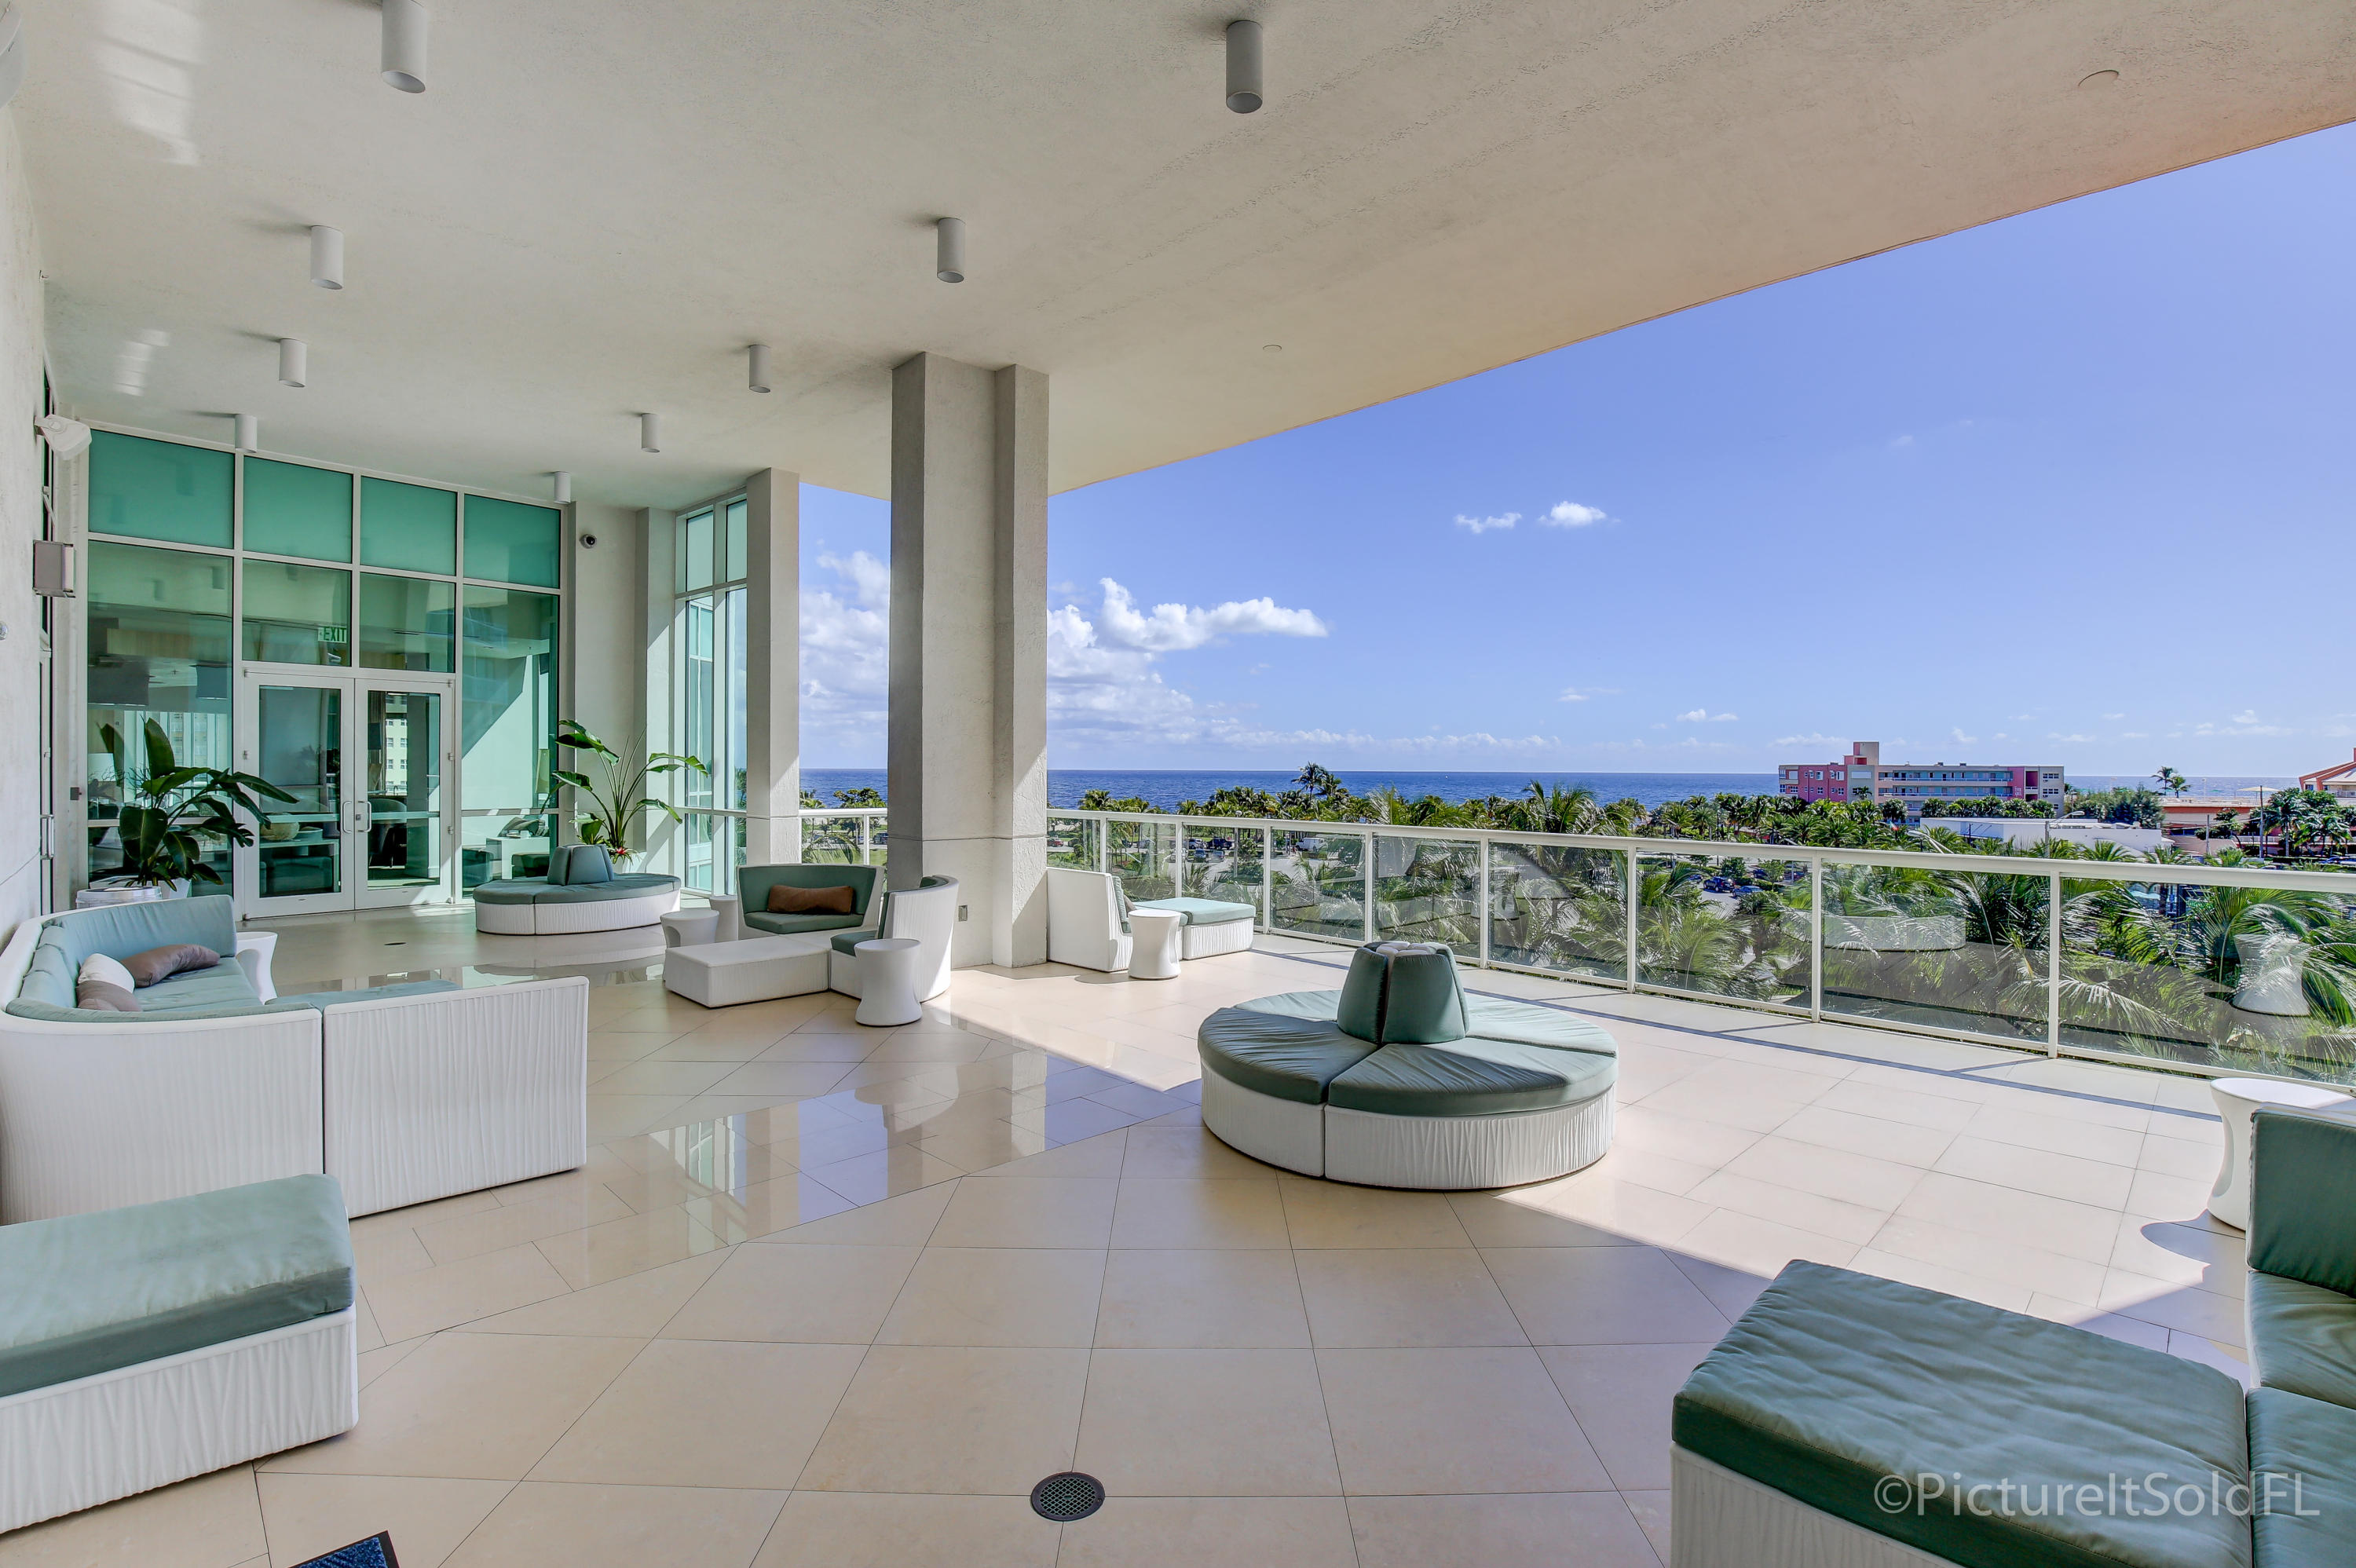 OCEANSIDE POMPANO BEACH REAL ESTATE